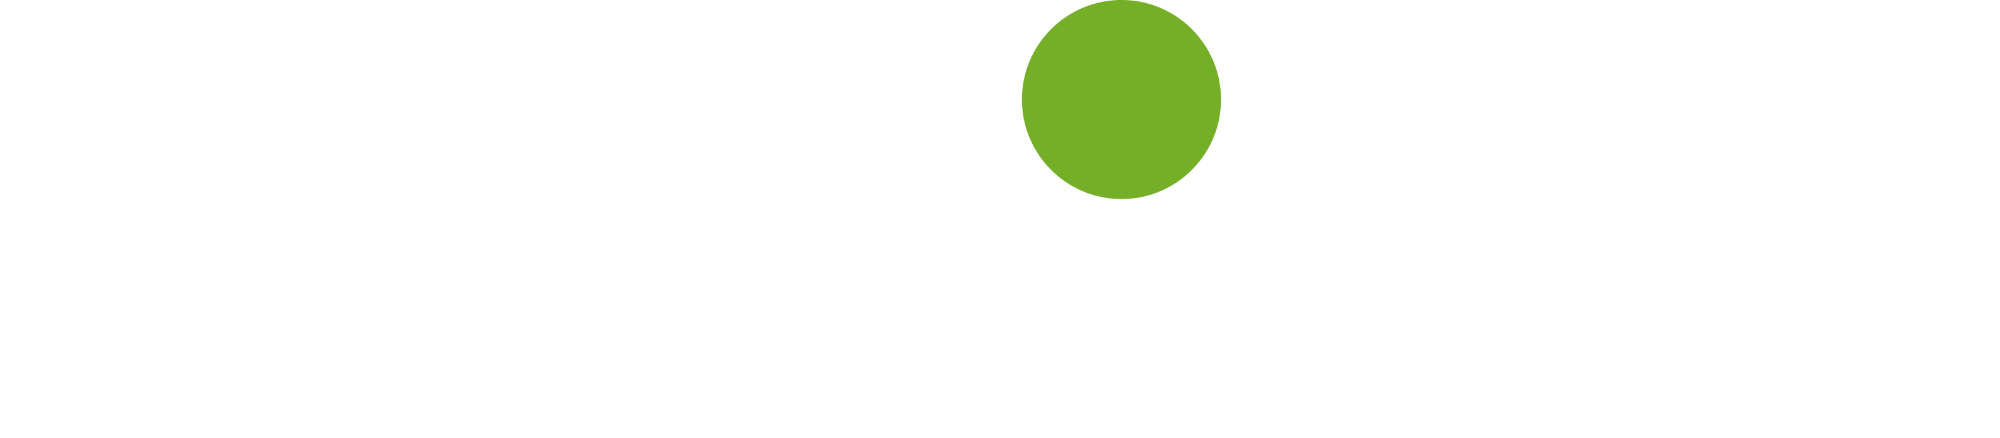 Green peas choice of the future logo